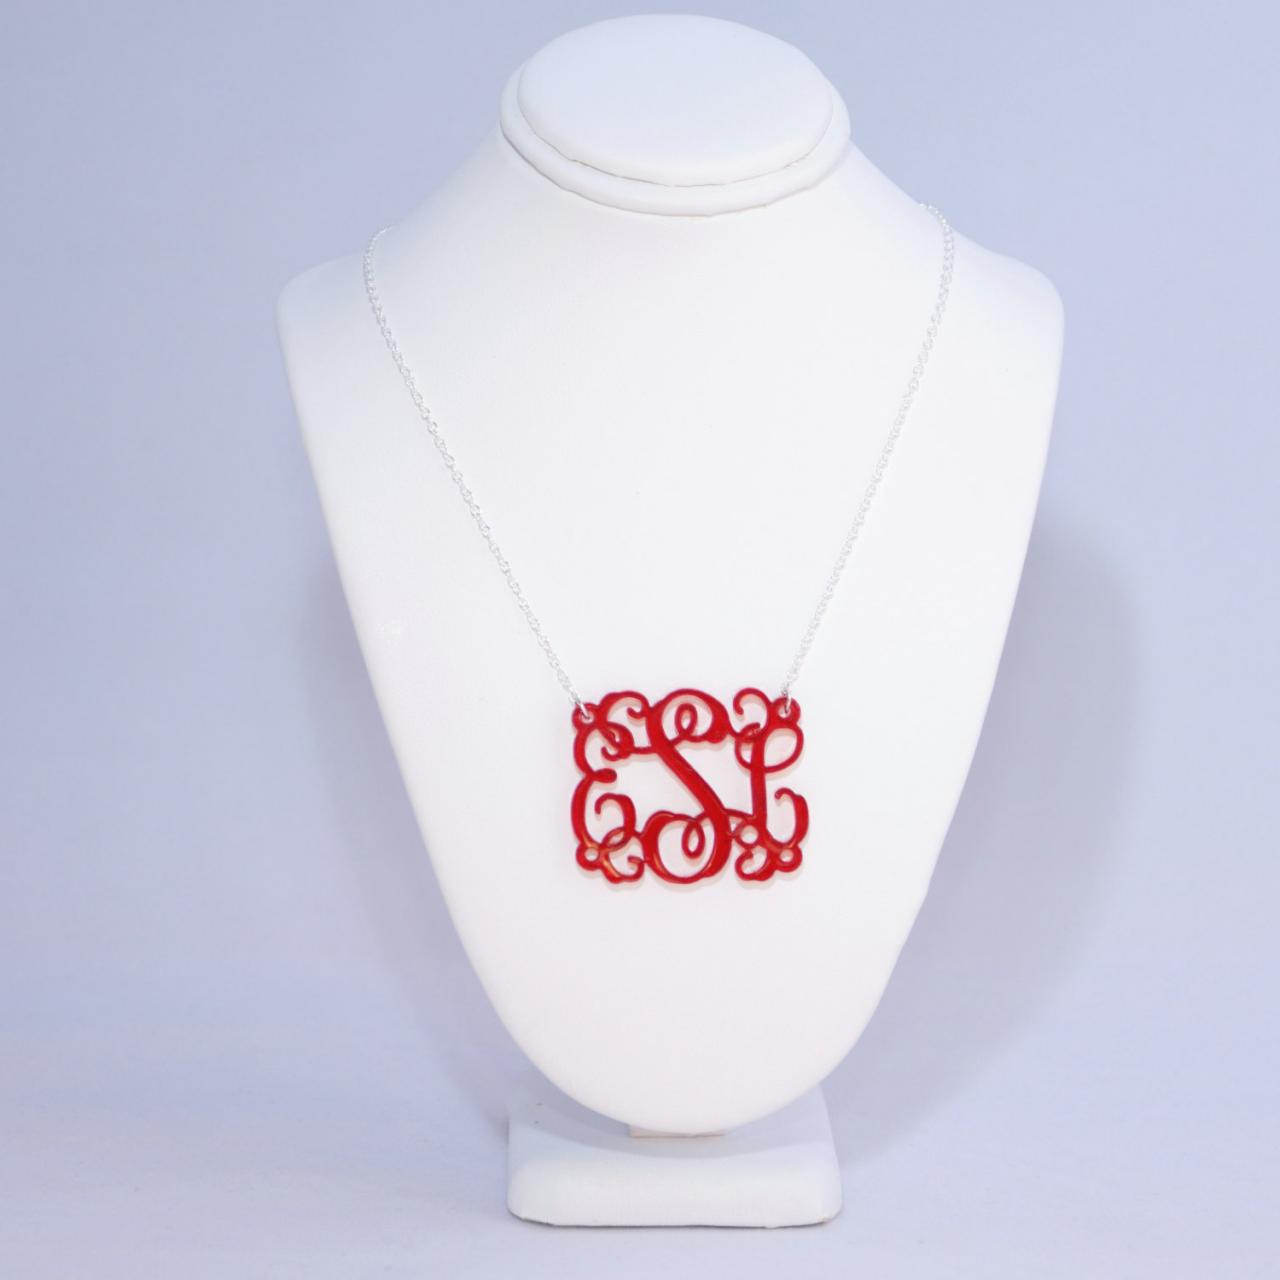 3 Initials Vine Monogram Necklace - 1.5 inch Personalized Monogram Handmade Acrylic Custom Lasercut